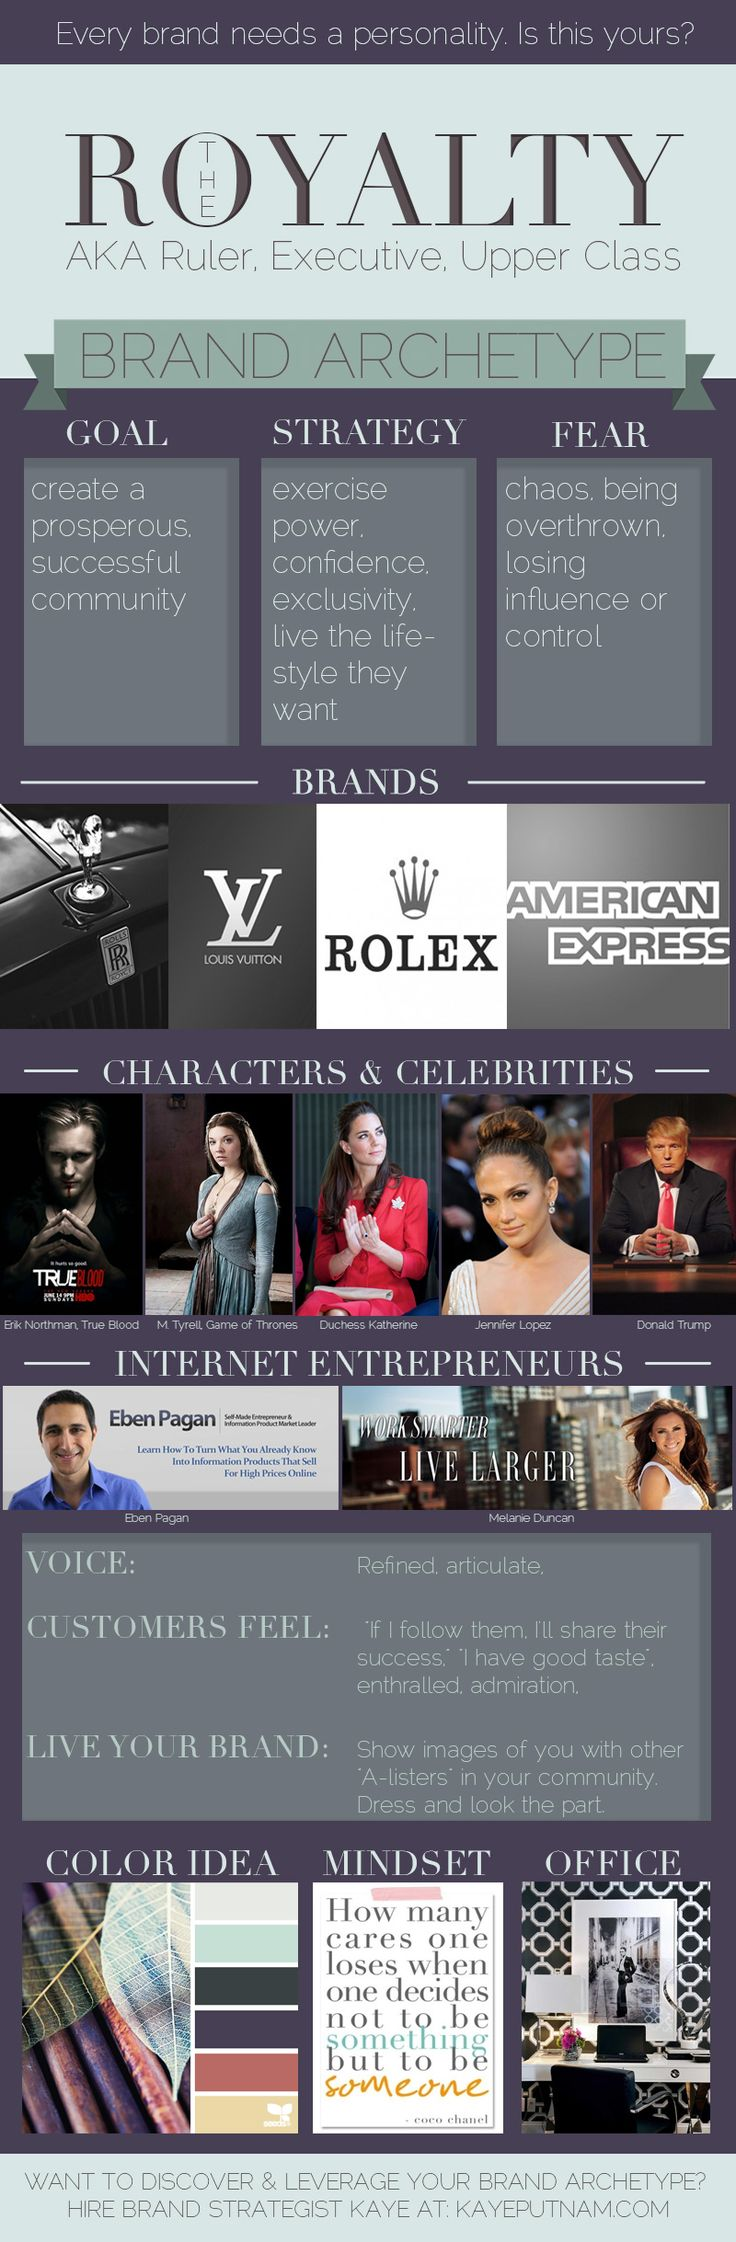 My BRANDALITY (brand personality) archetype is the royal. Find out yours >> http://kayeputnam.com/brandality-quiz/